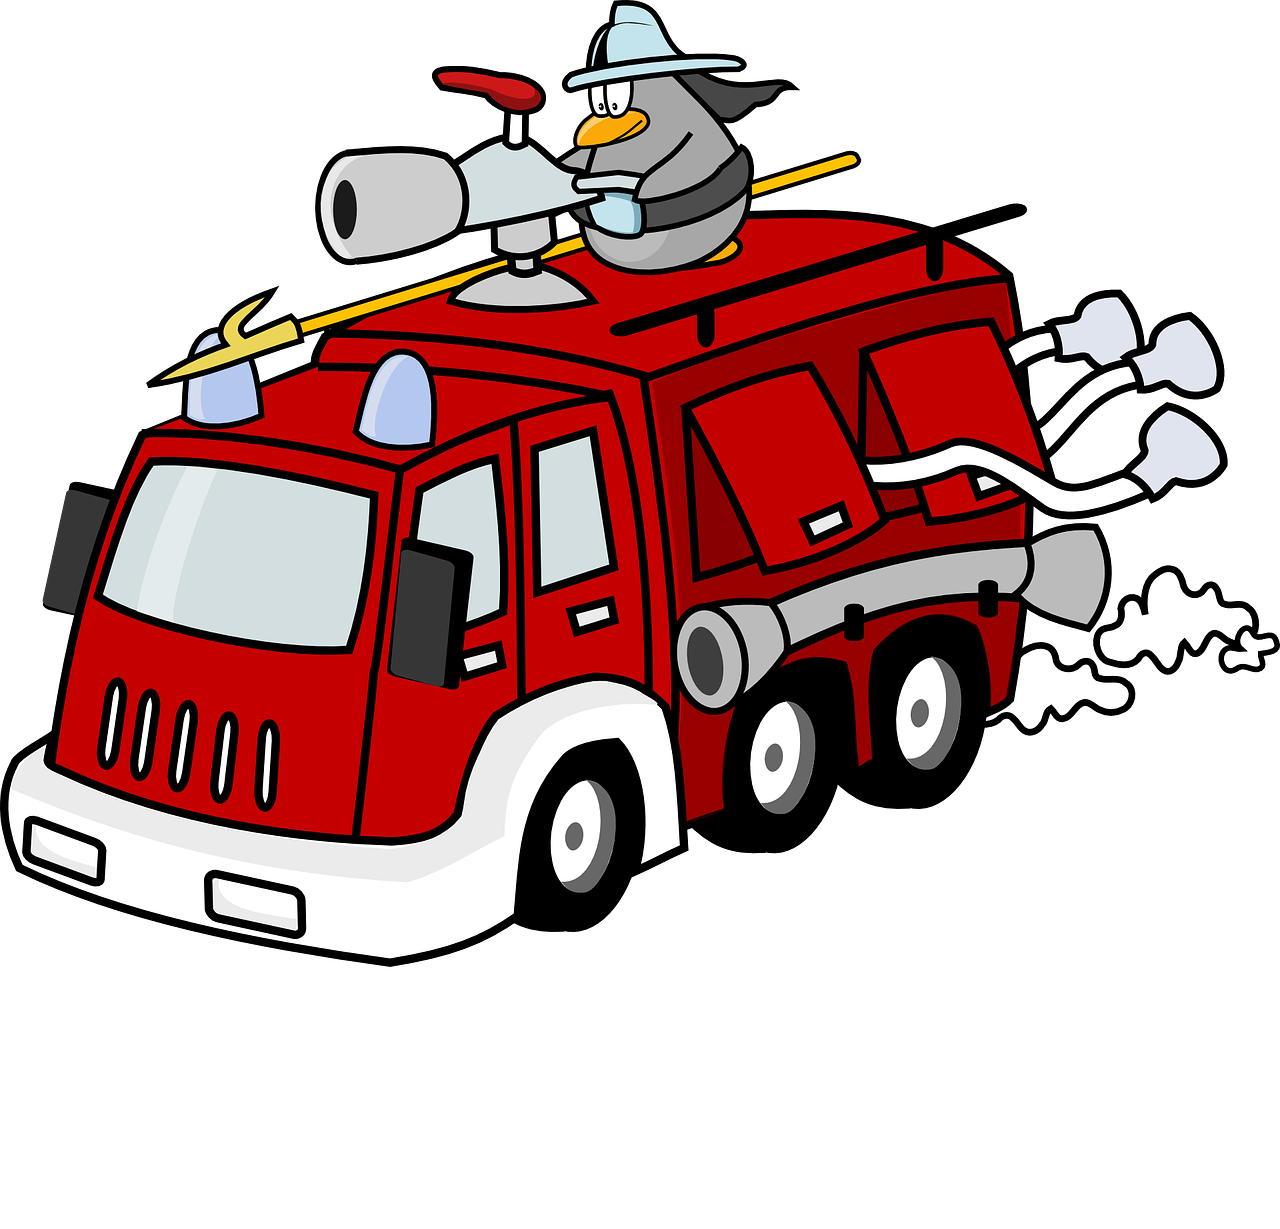 fire-engine-23774_1280.png